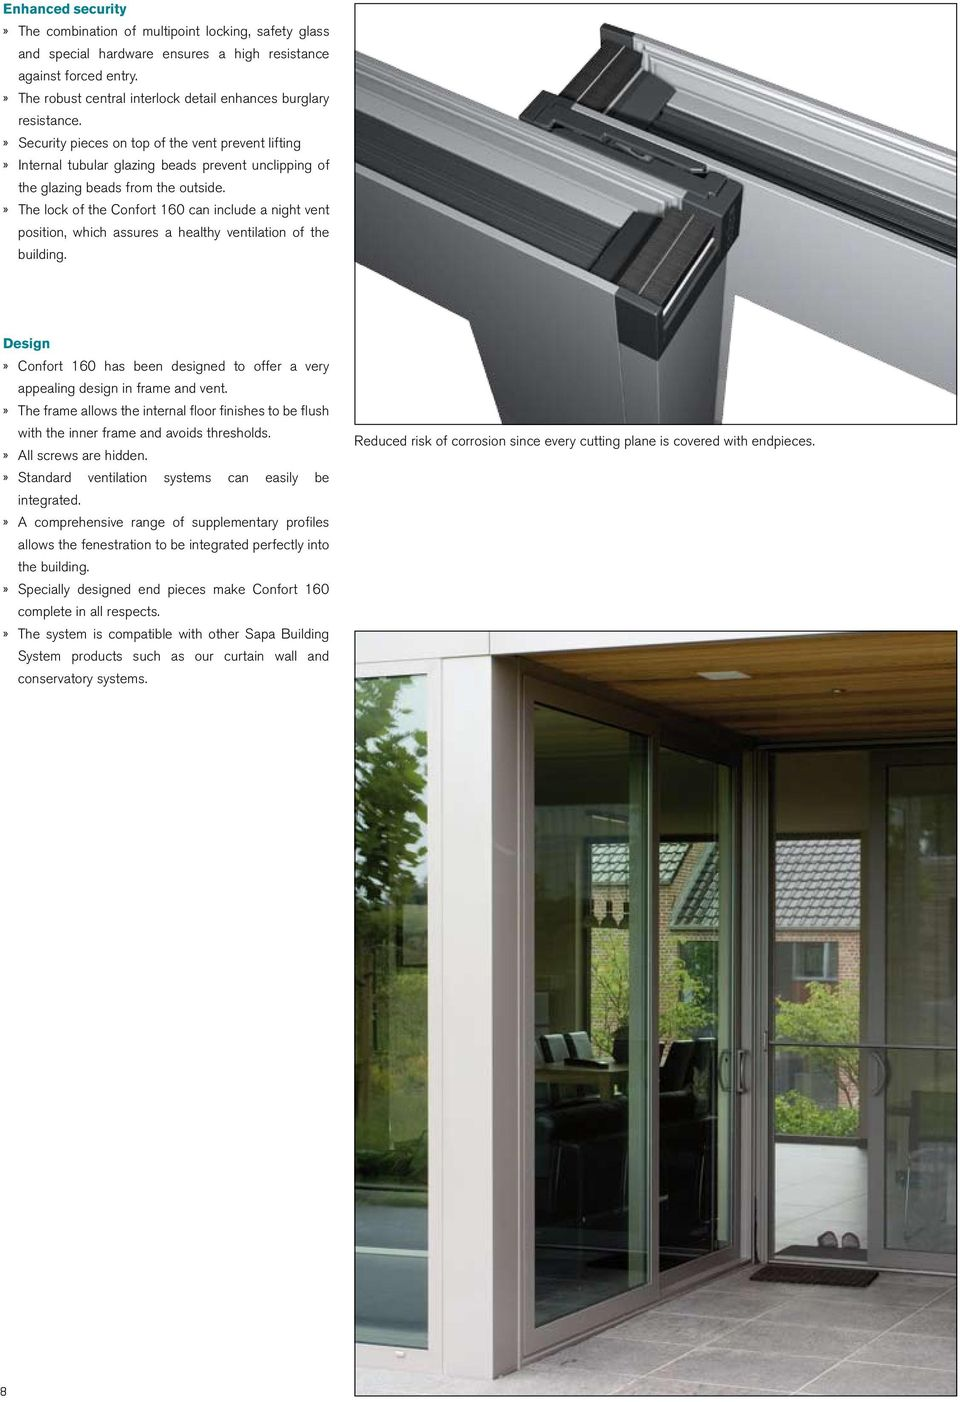 » Security pieces on top of the vent prevent lifting» Internal tubular glazing beads prevent unclipping of the glazing beads from the outside.